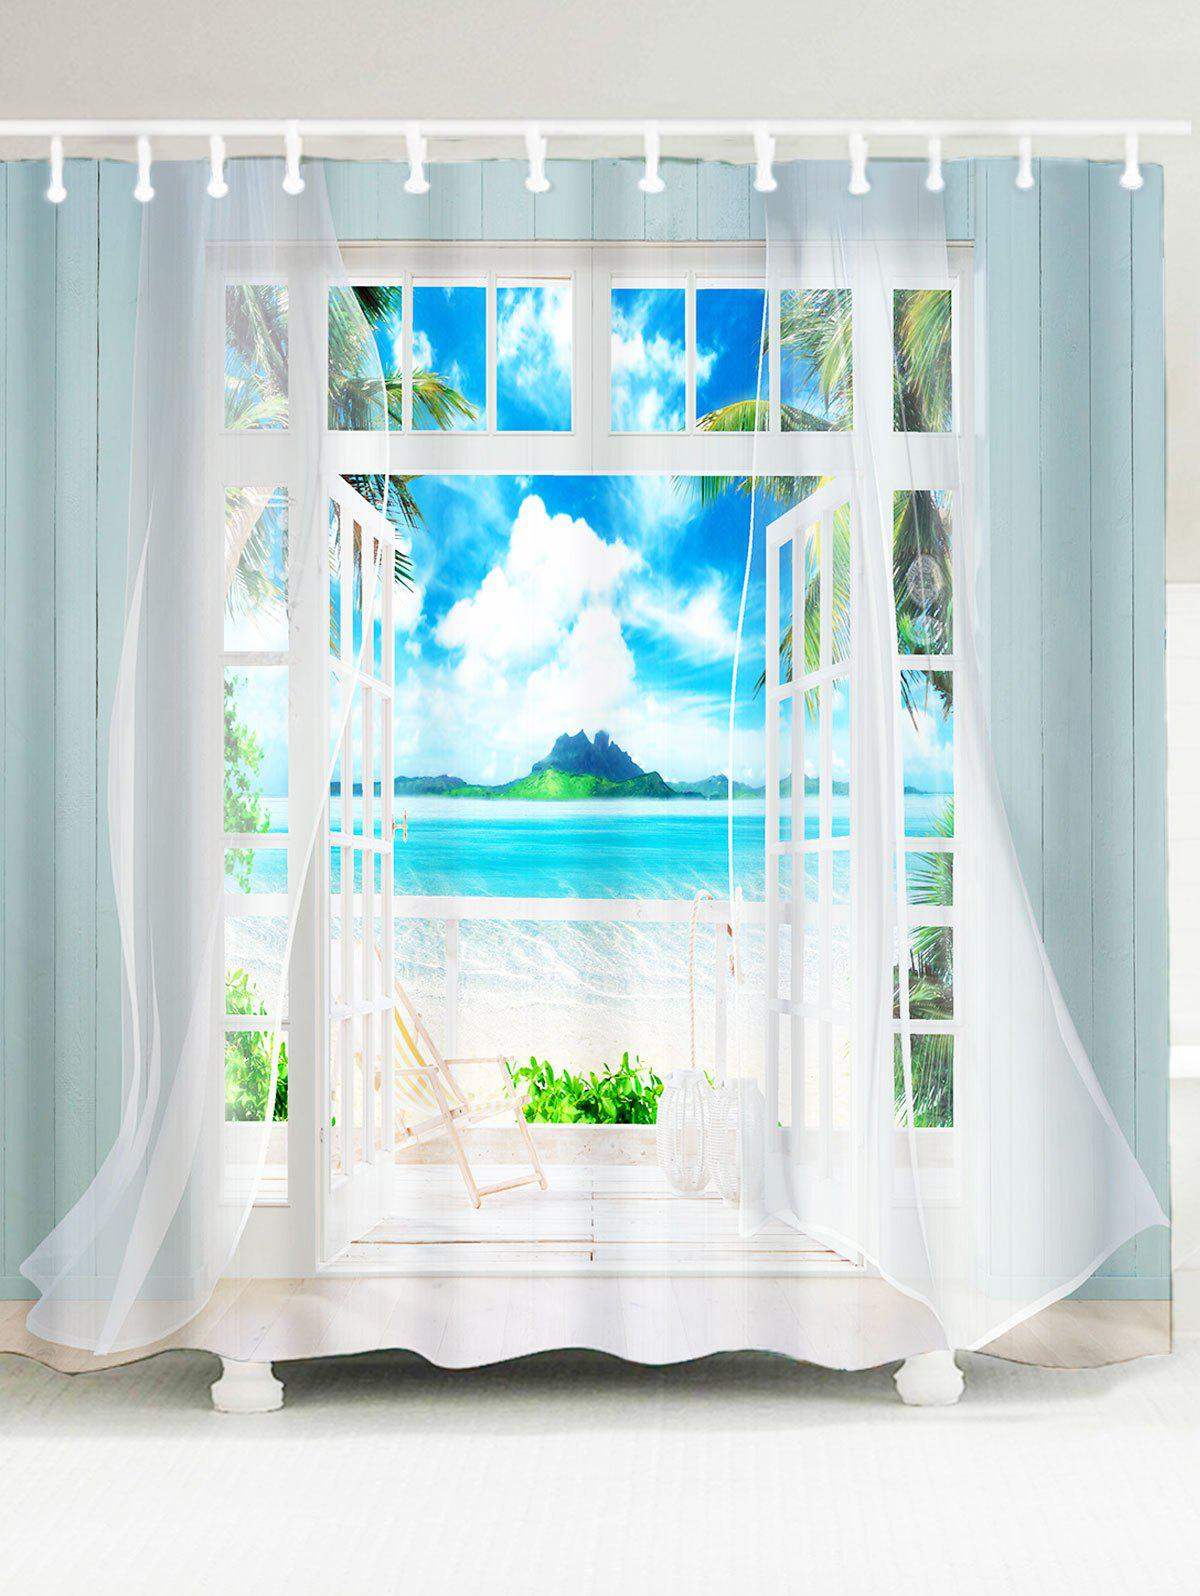 Waterproof 3D Window Frame Printed Shower Curtain - BLUE W79 INCH * L71 INCH